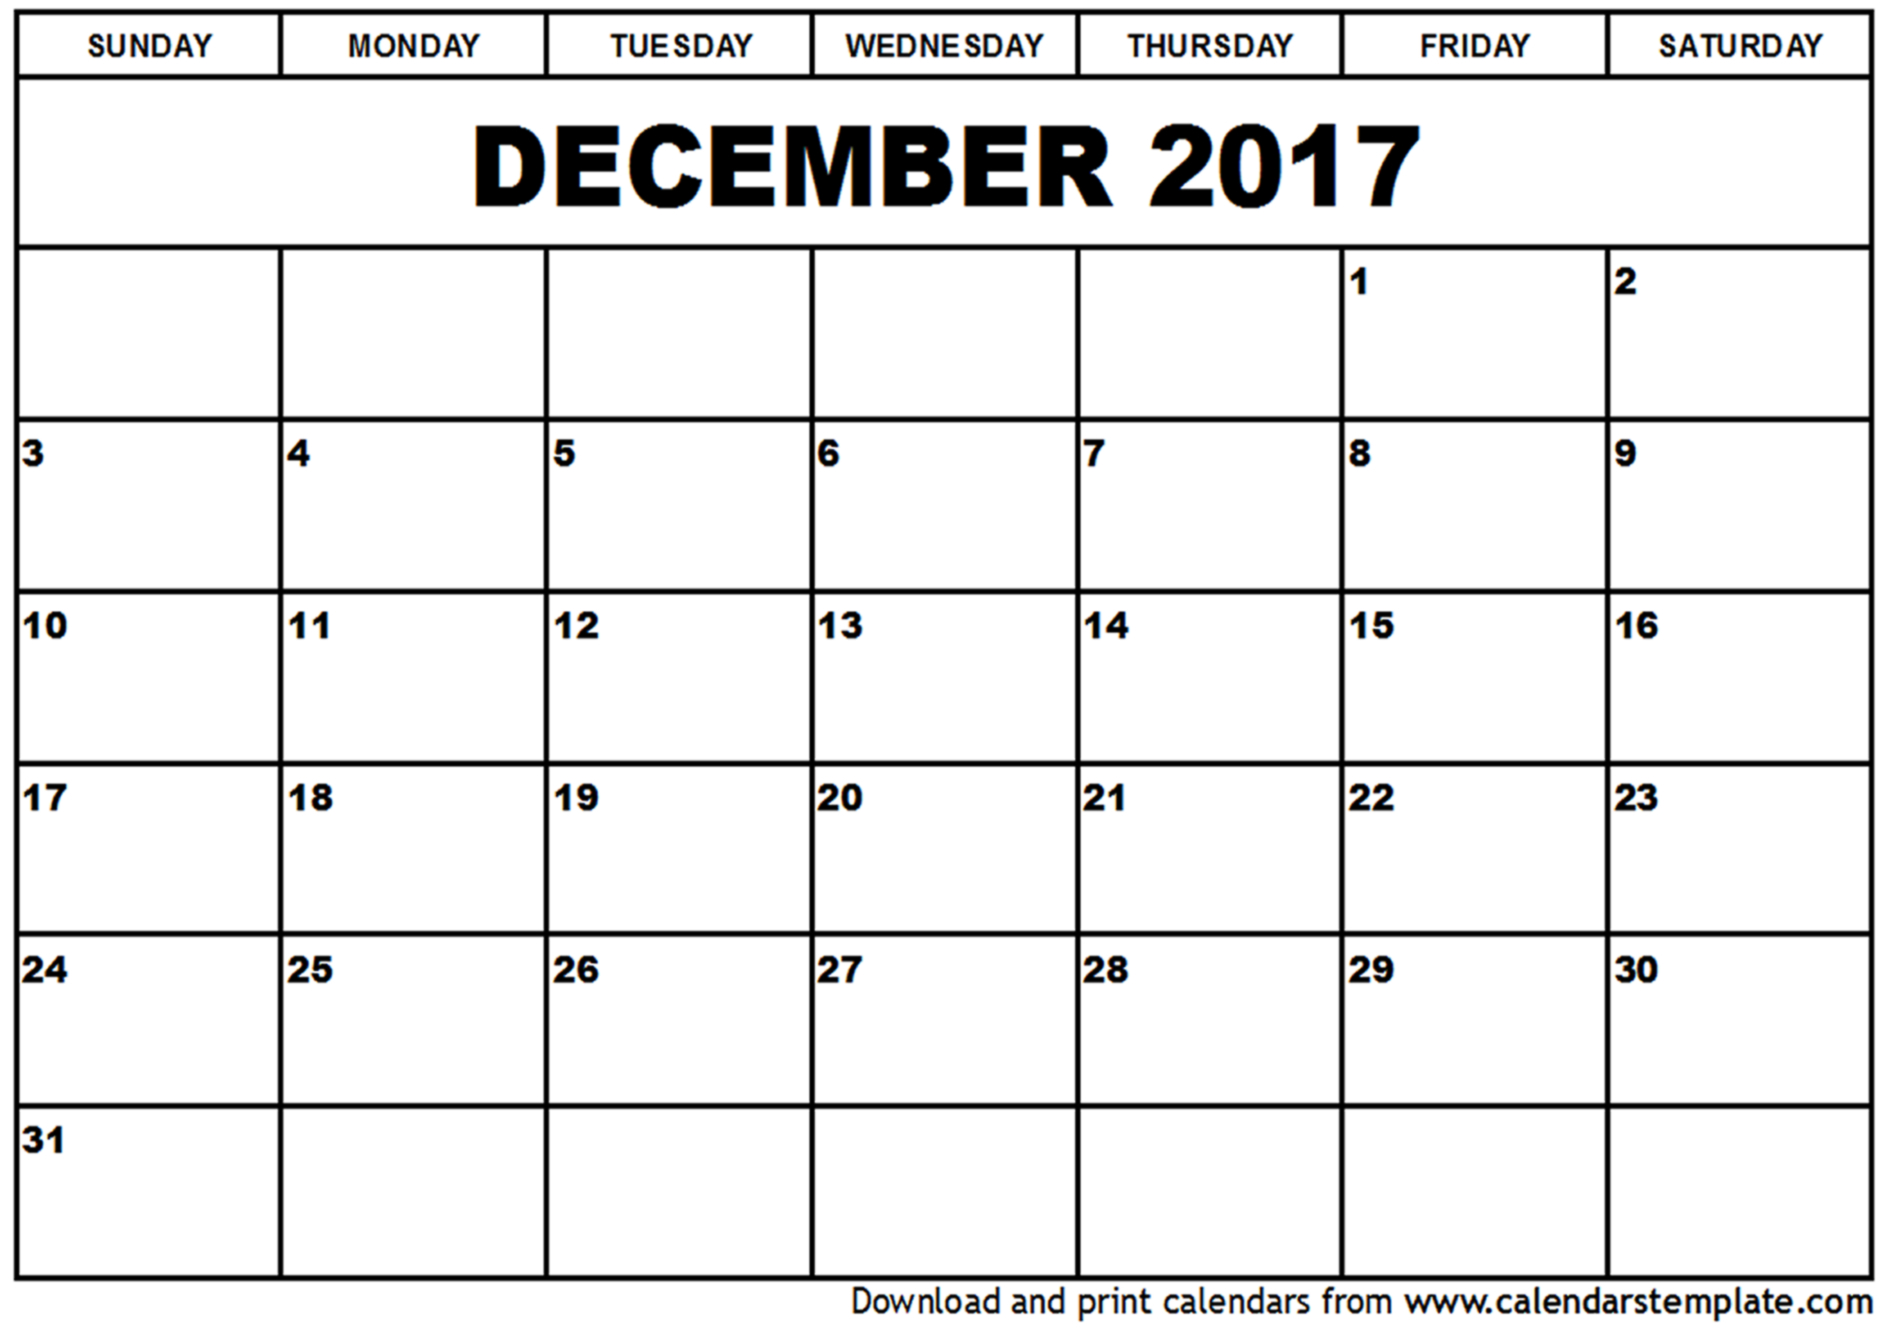 December 2017 Calendar Cute | weekly calendar template